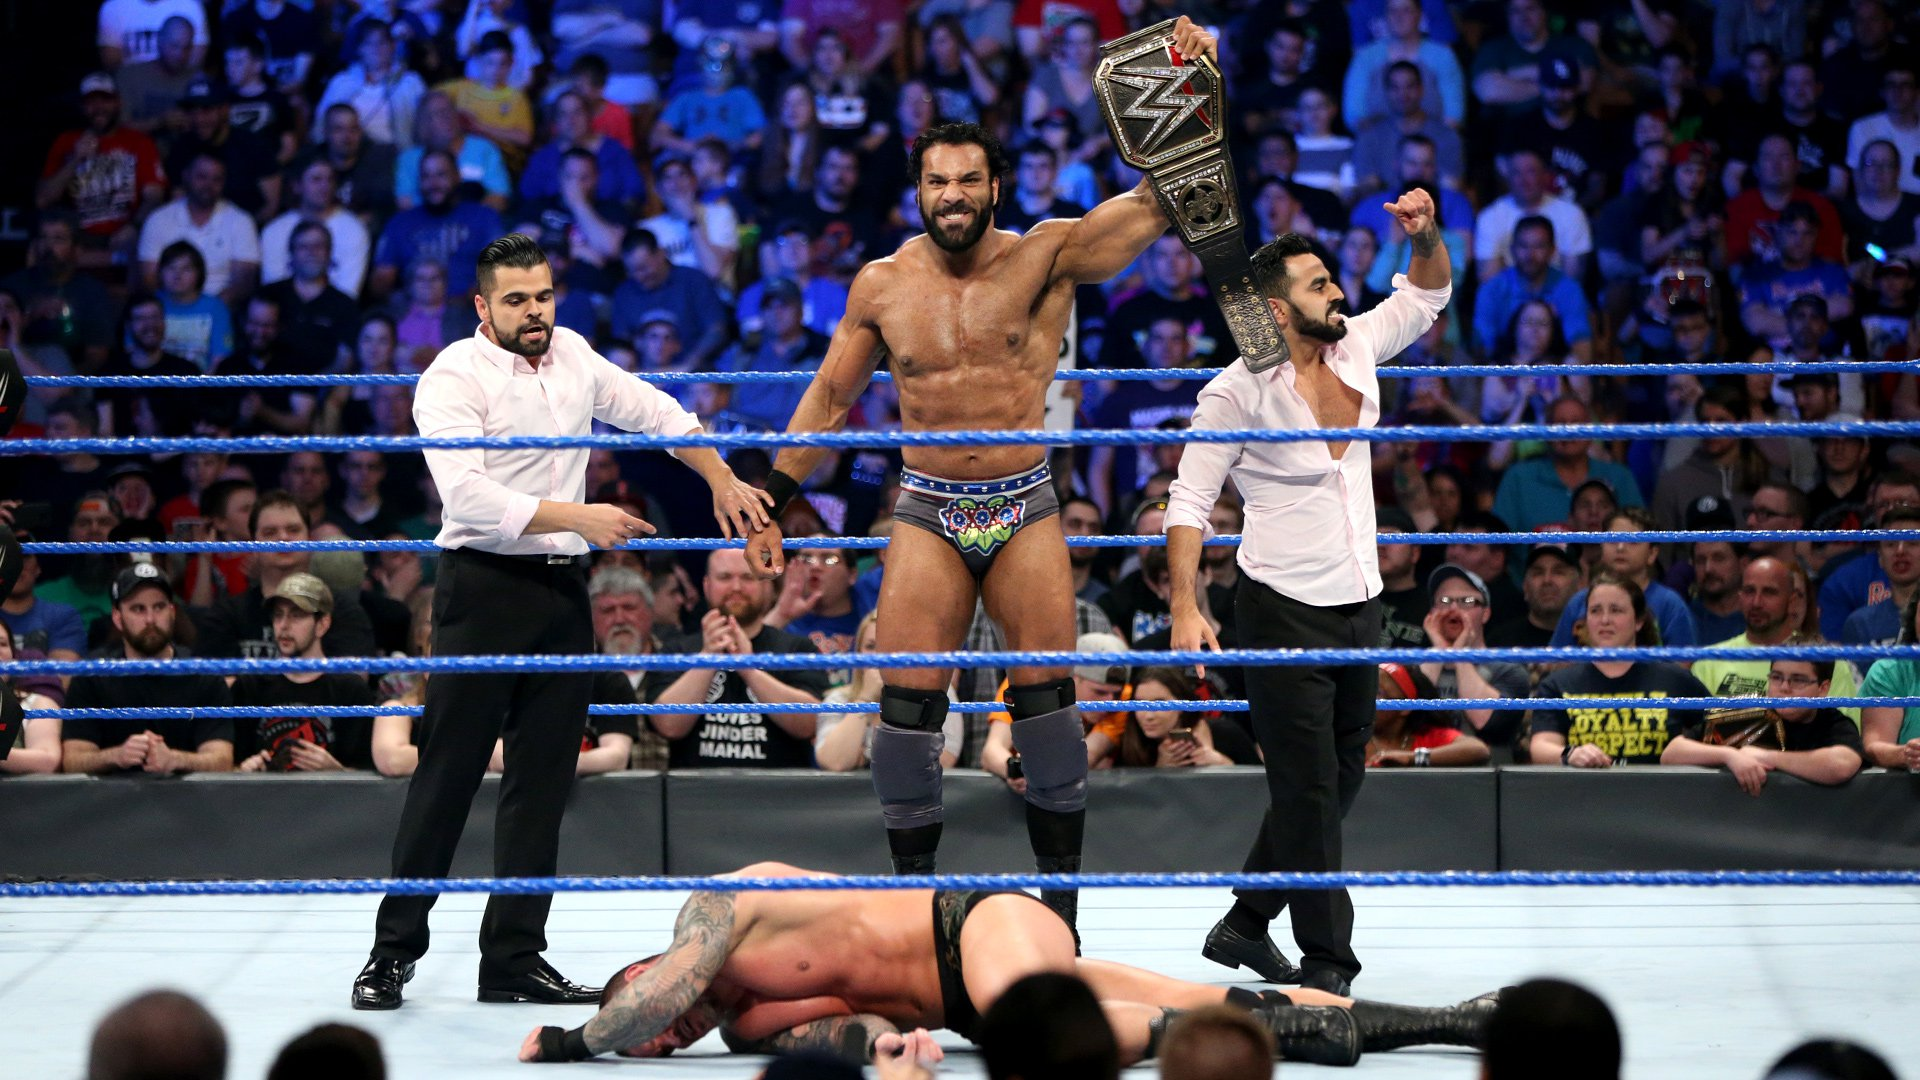 Mahal challenges Orton for the WWE Title this Sunday at WWE Backlash.